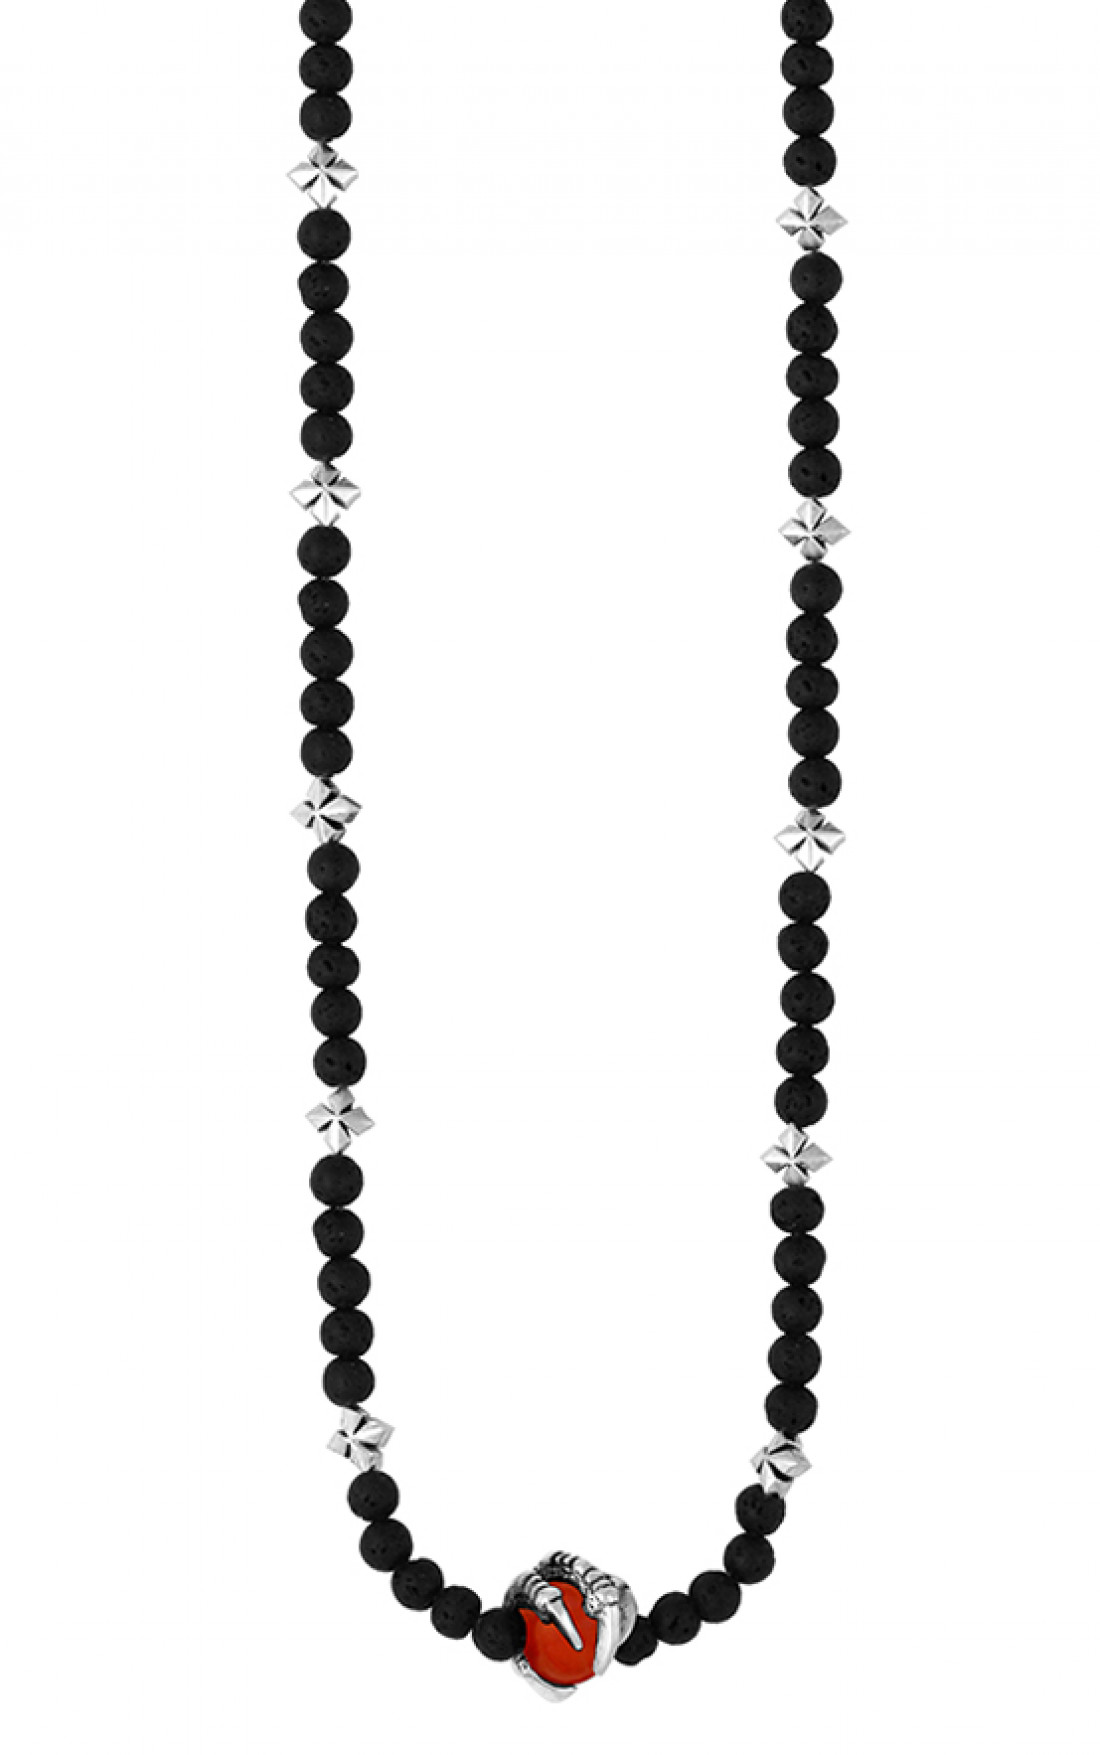 King Baby - Lava Bead Necklace with Raven Claw and MB Crosses (K51-5500)